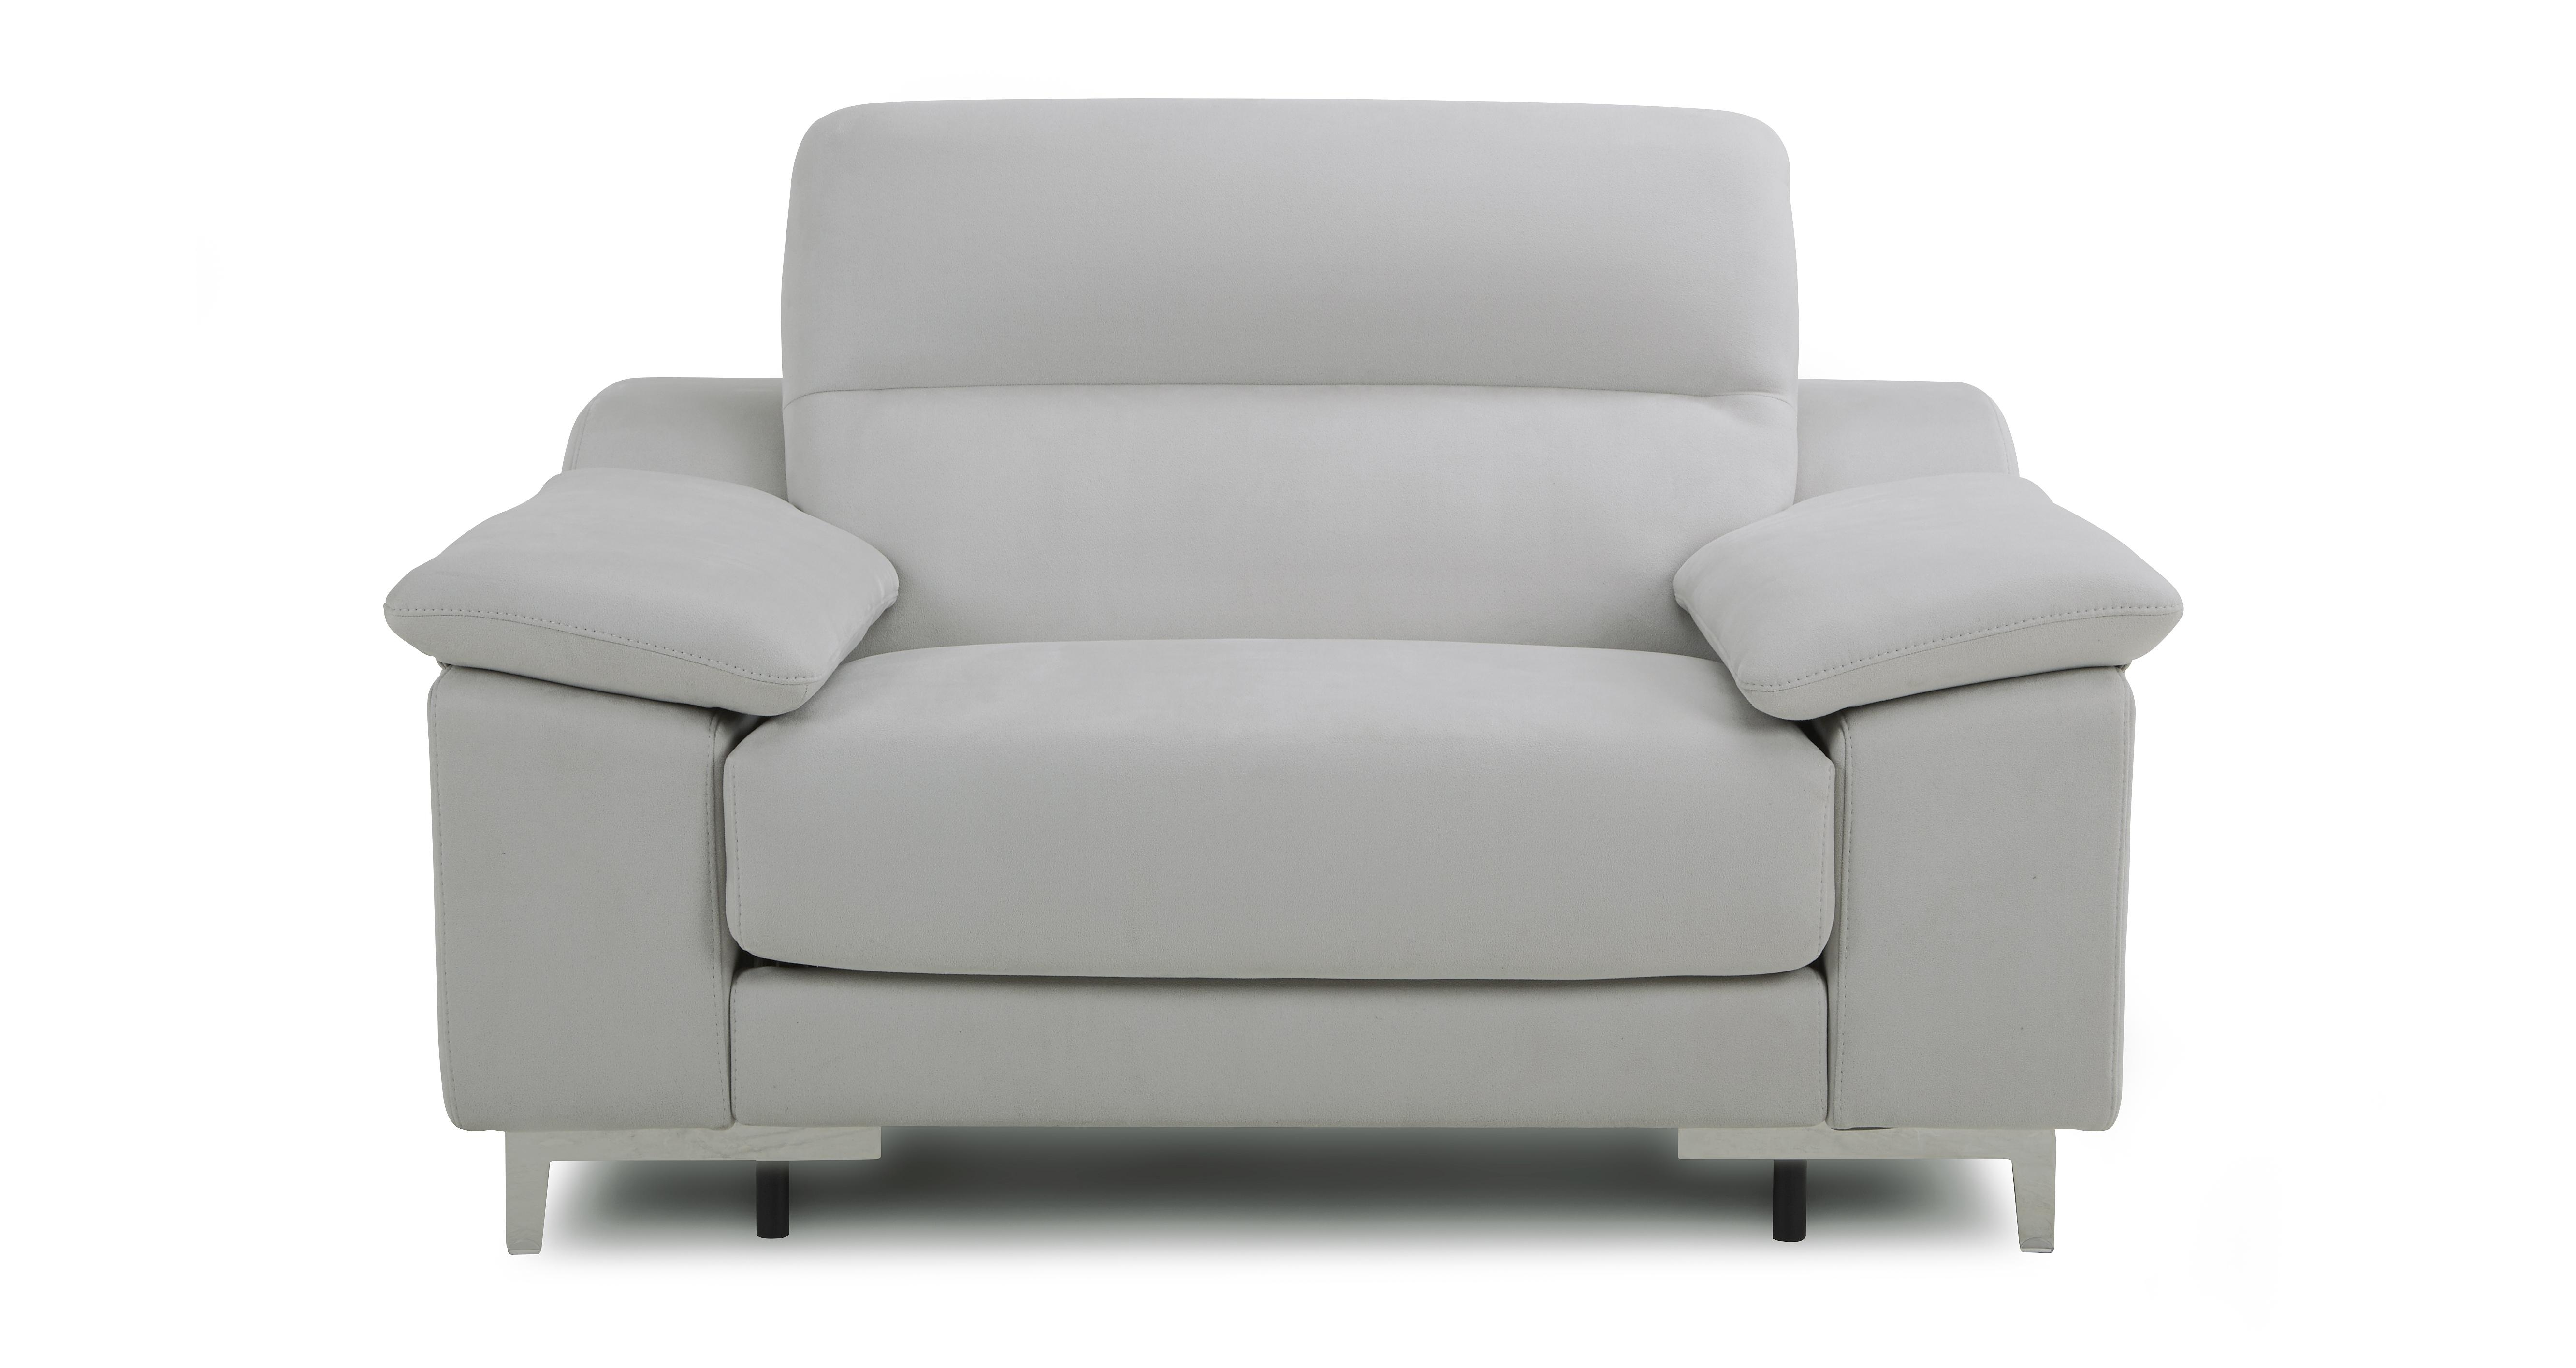 Chair Armchair Sofa Beds Single Futon Sofa Bed Chair Snooze Intended For Single Chair Sofa Bed (Image 6 of 15)